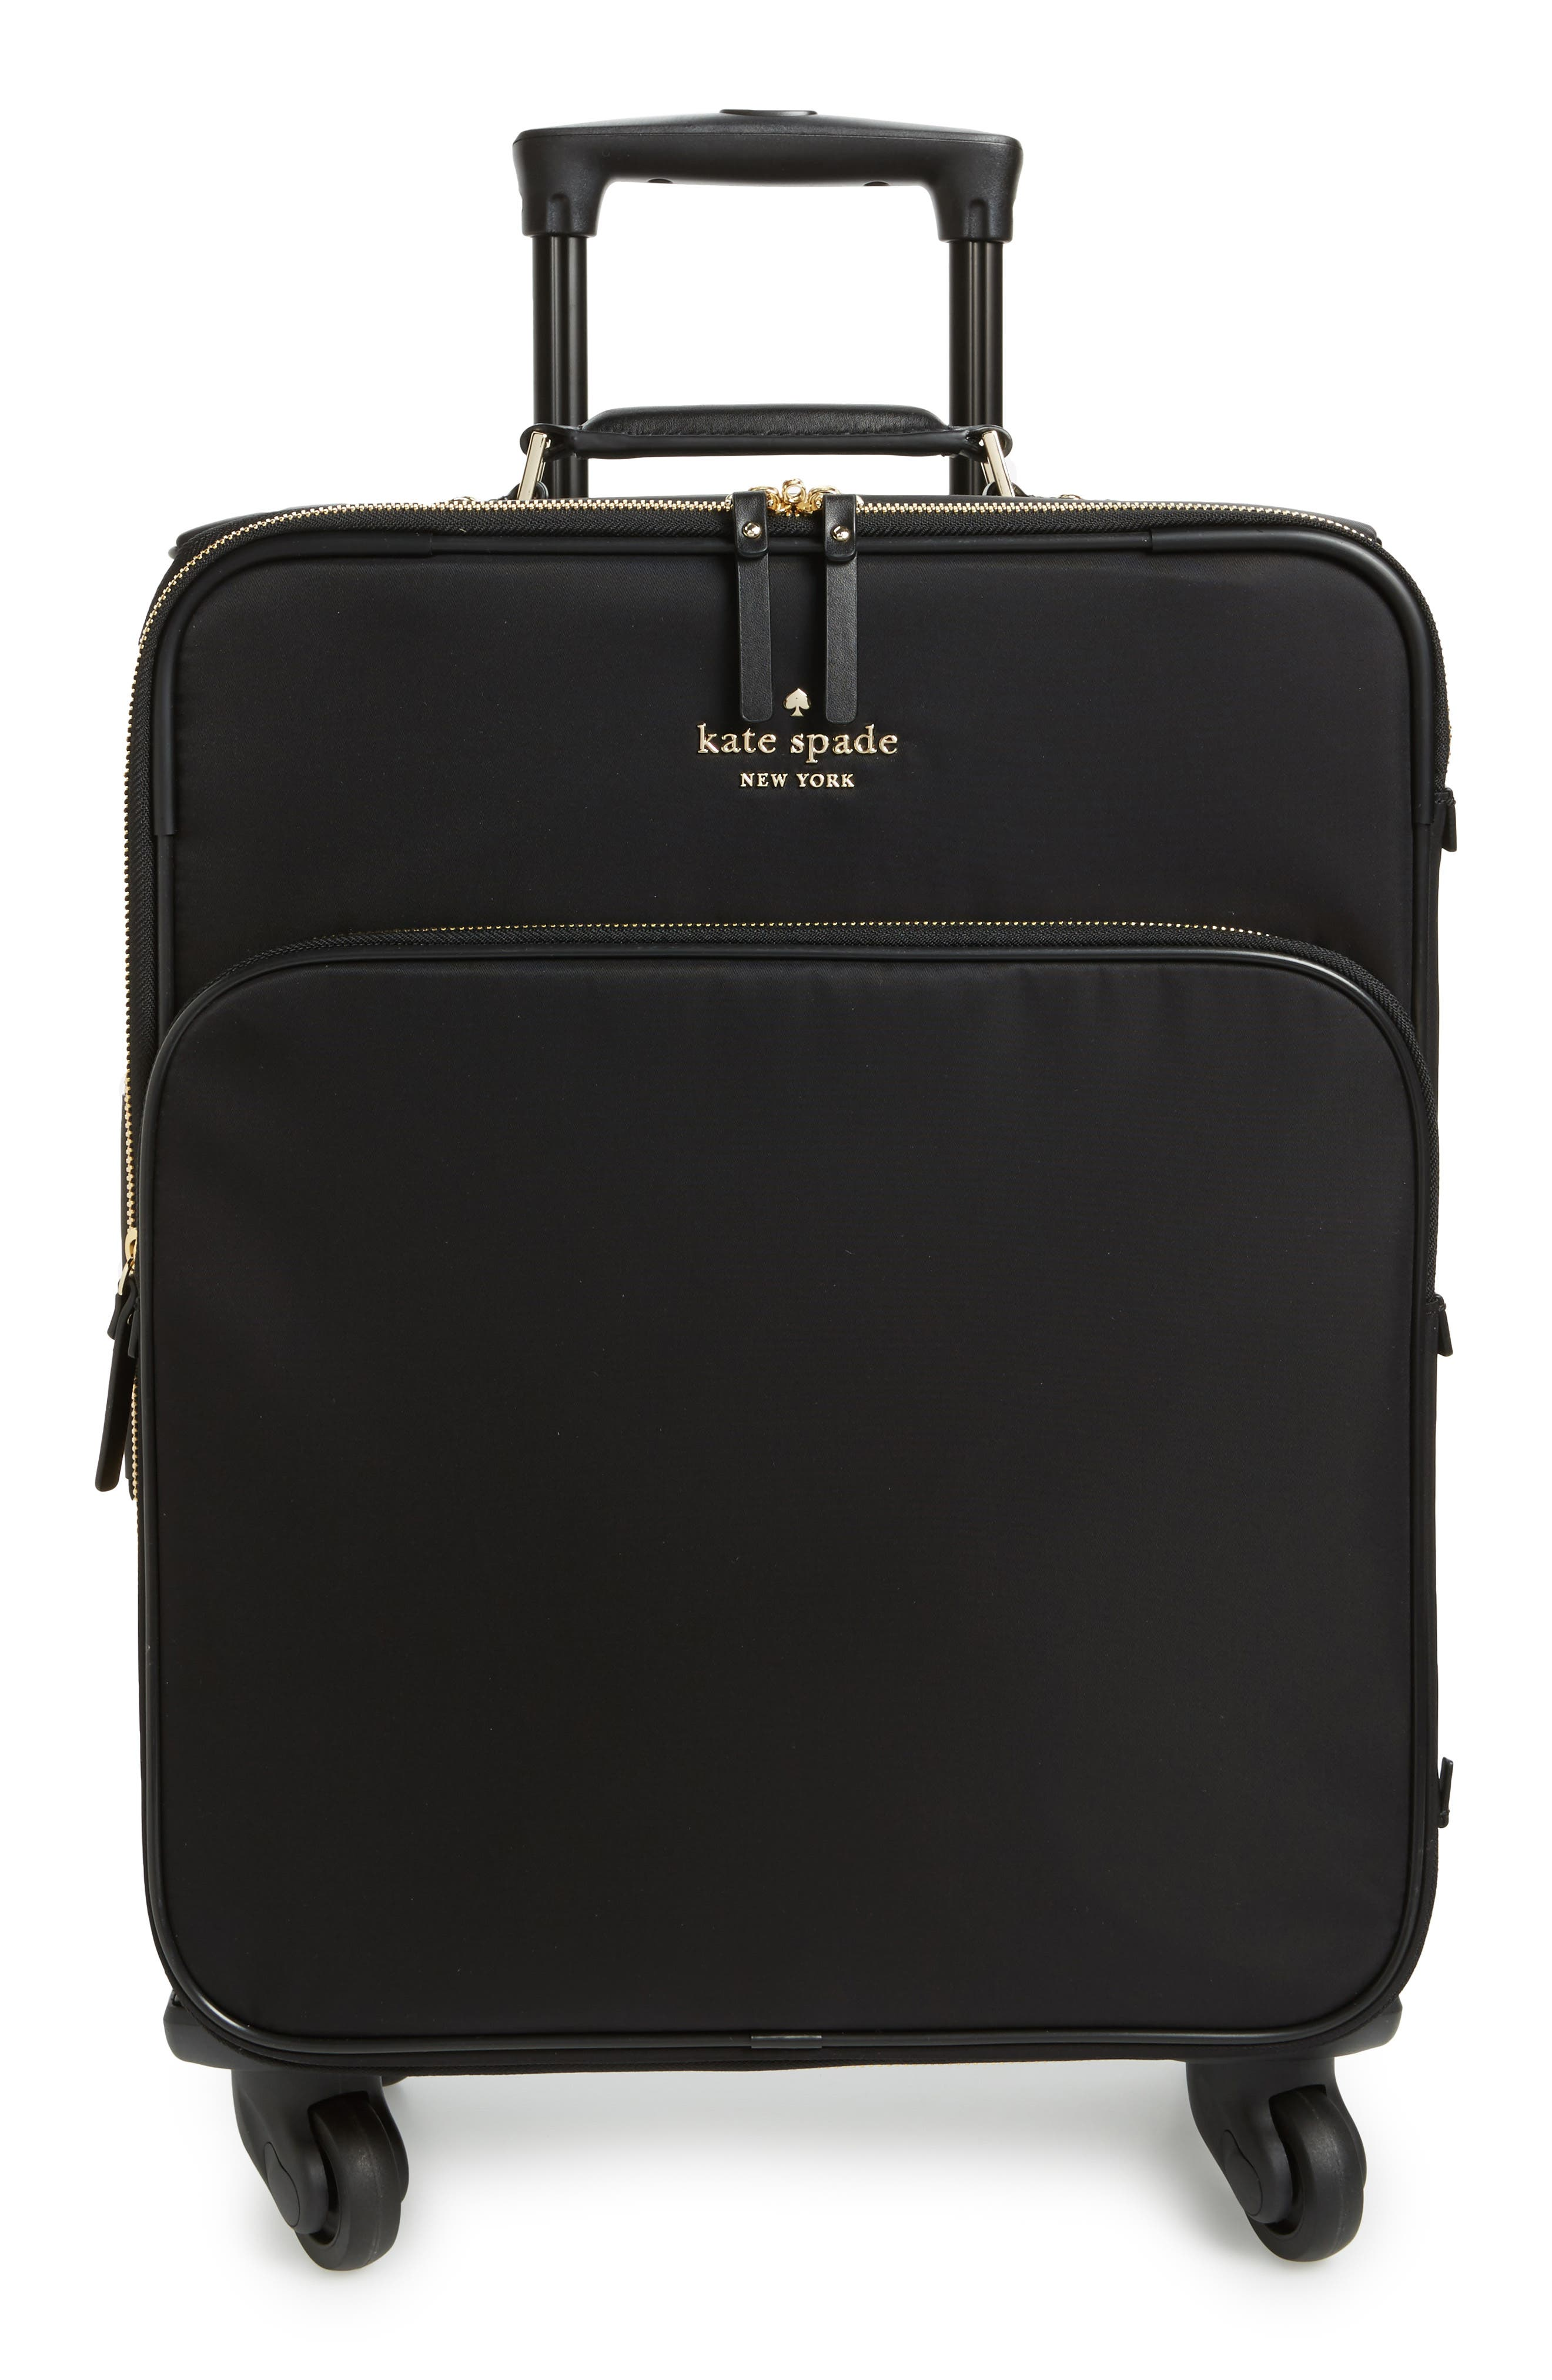 KATE SPADE NEW YORK watson lane nylon international 21-inch rolling carry-on